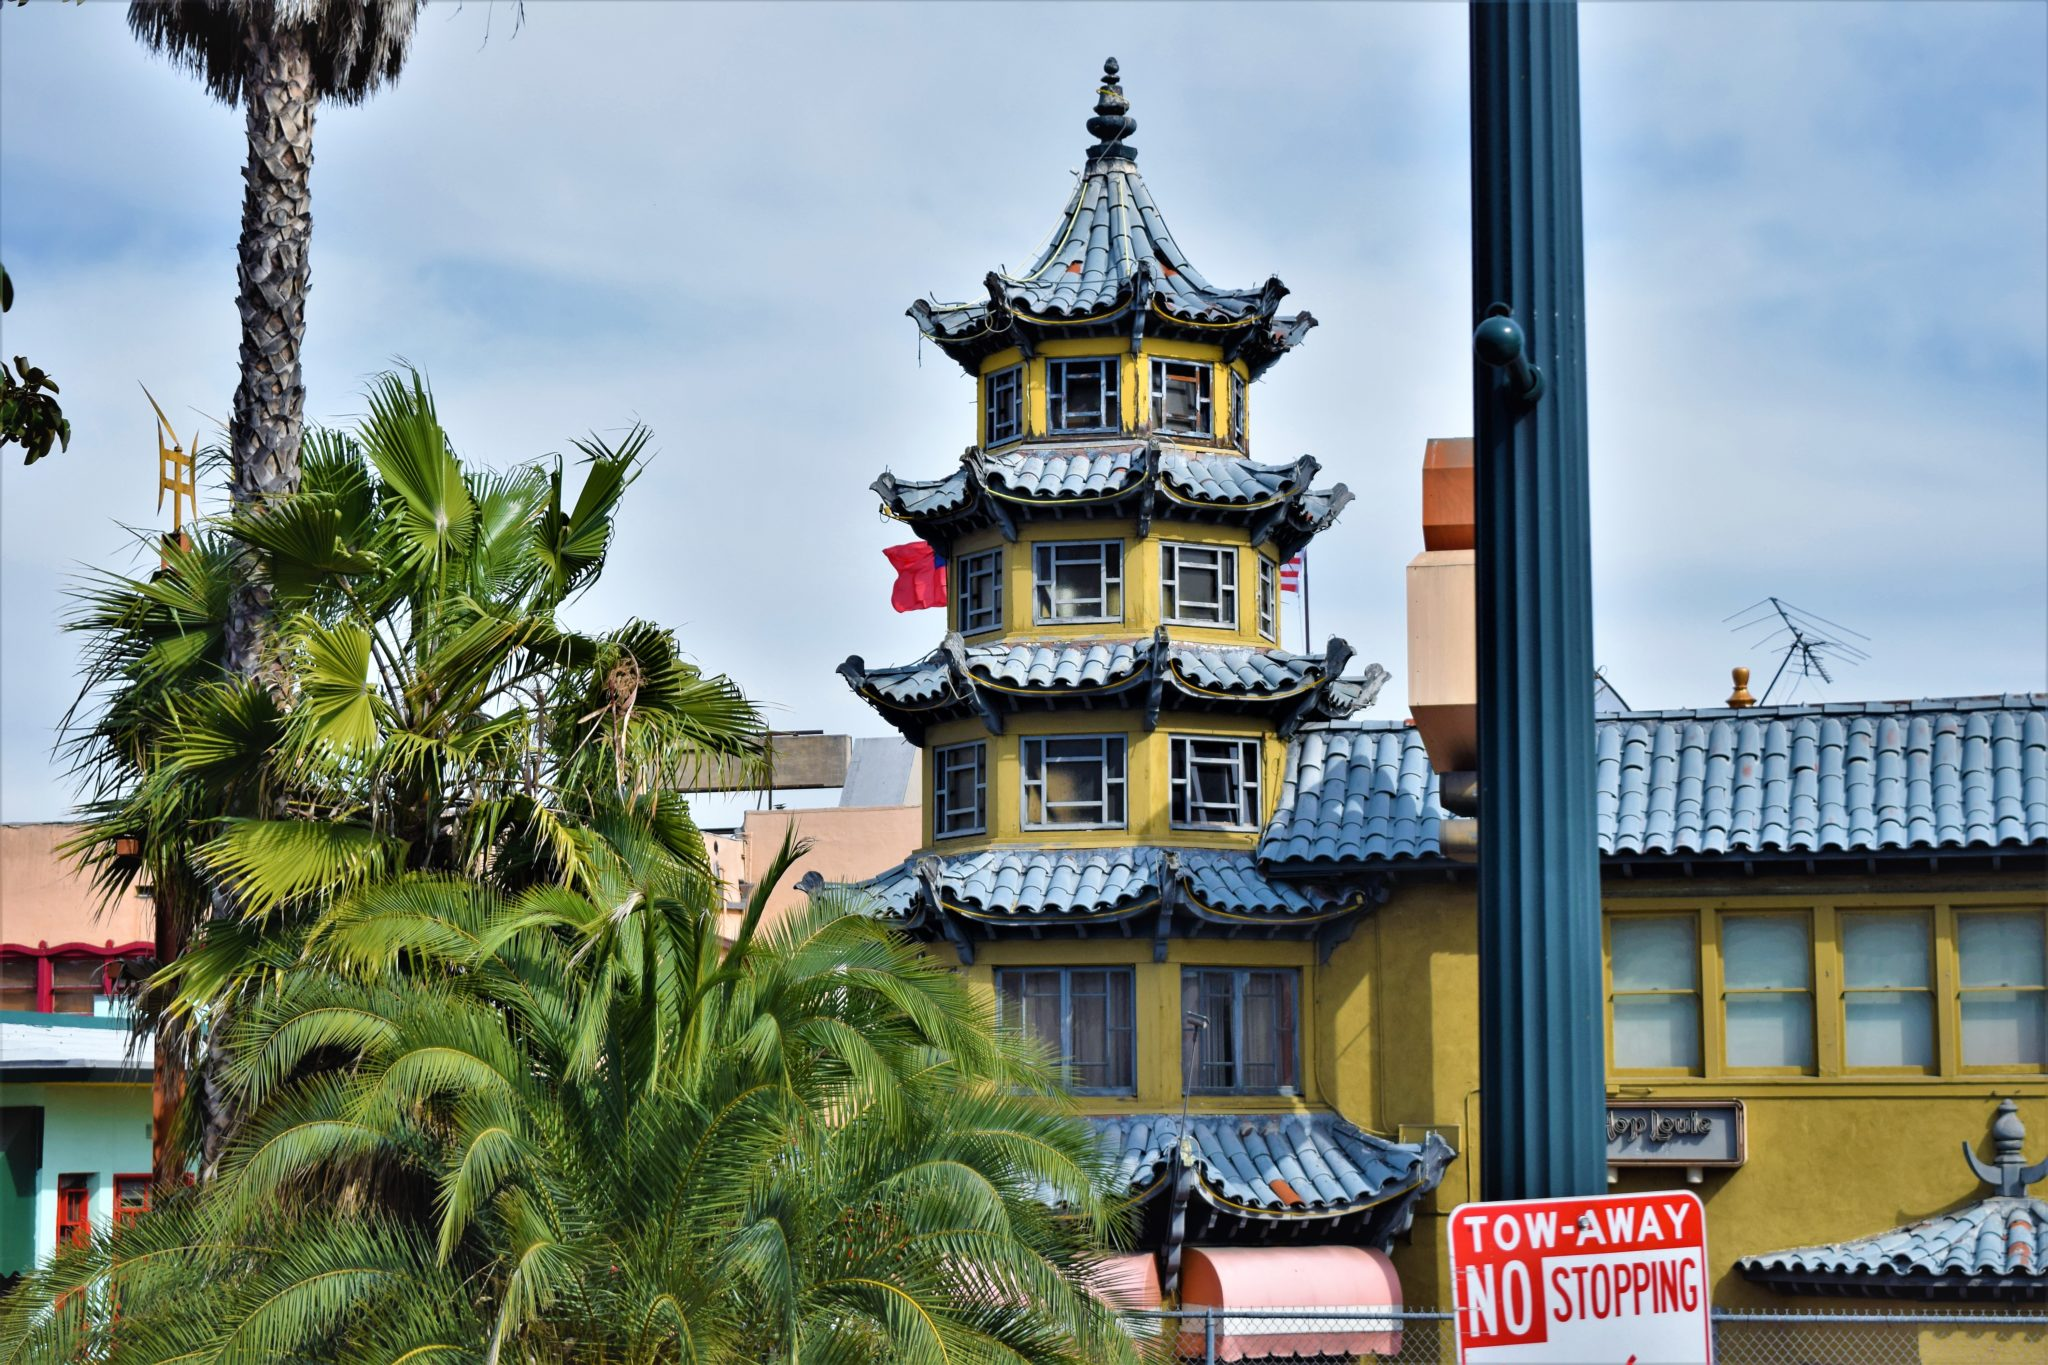 Architecture in Chinatown, los angeles, hop on hop off bus tour